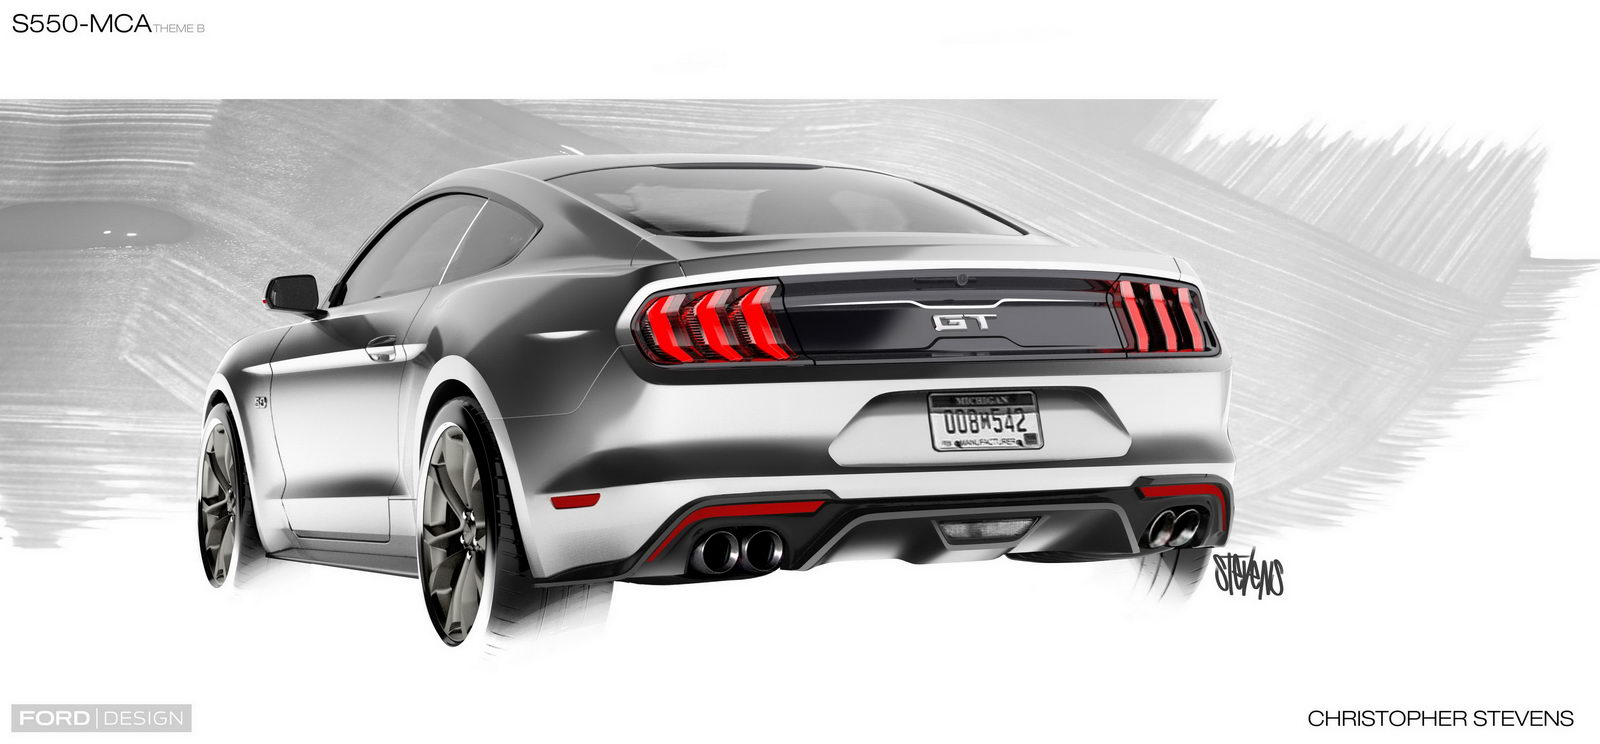 Ford Mustang GT facelift 2018 6